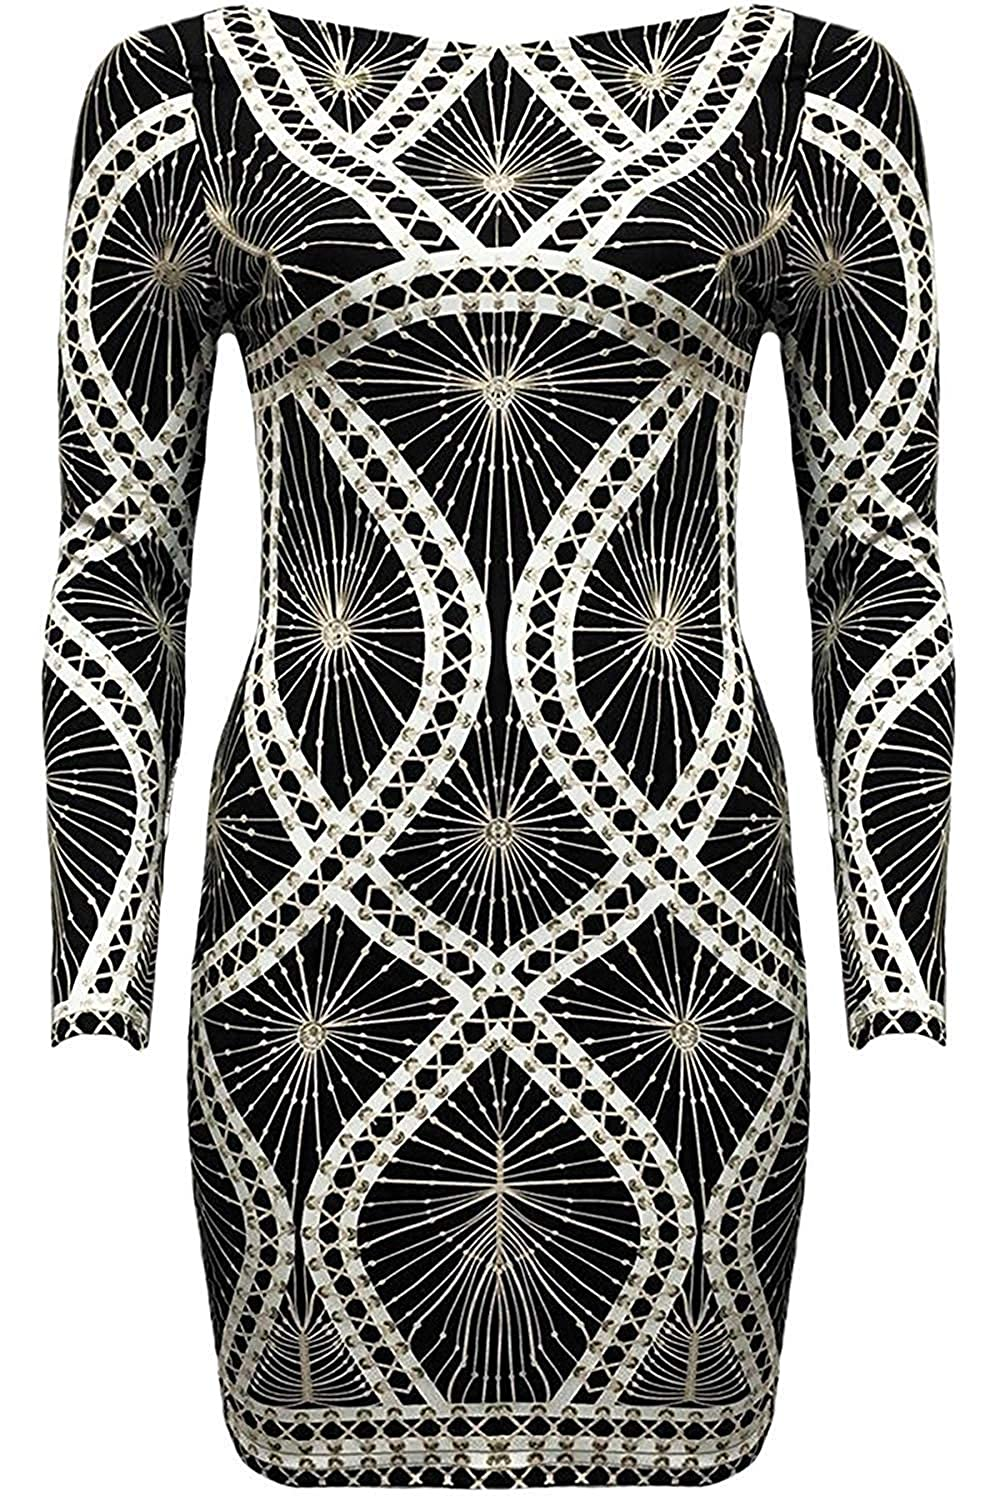 Fantasia Boutique Ladies Celeb Style Web Stitch Lace Up Design Embellished Scuba Bodycon Dress